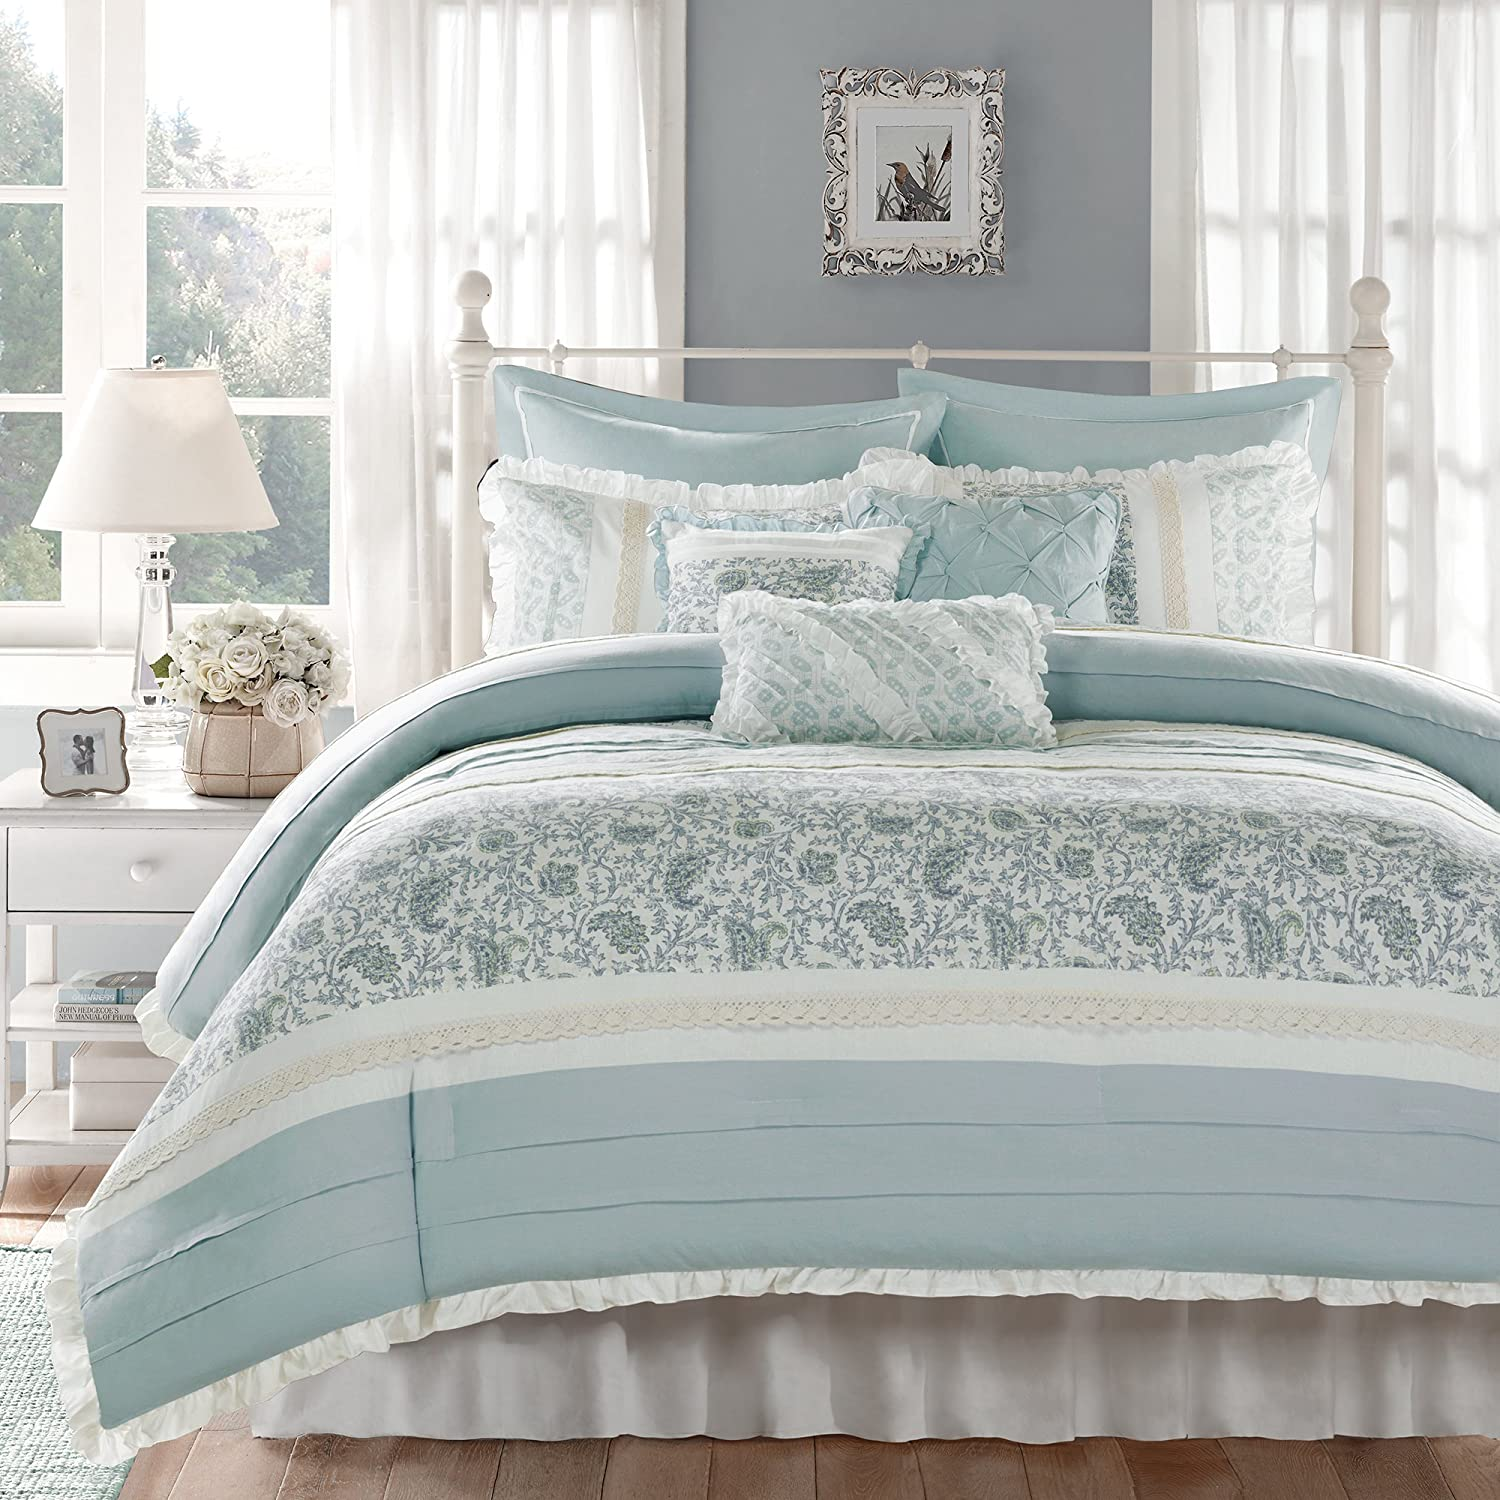 Madison Park Dawn Queen Size Bed Comforter Set Bed In A Bag - Aqua , Floral Shabby Chic – 9 Pieces Bedding Sets – 100% Cotton Percale Bedroom Comforters: Home & Kitchen